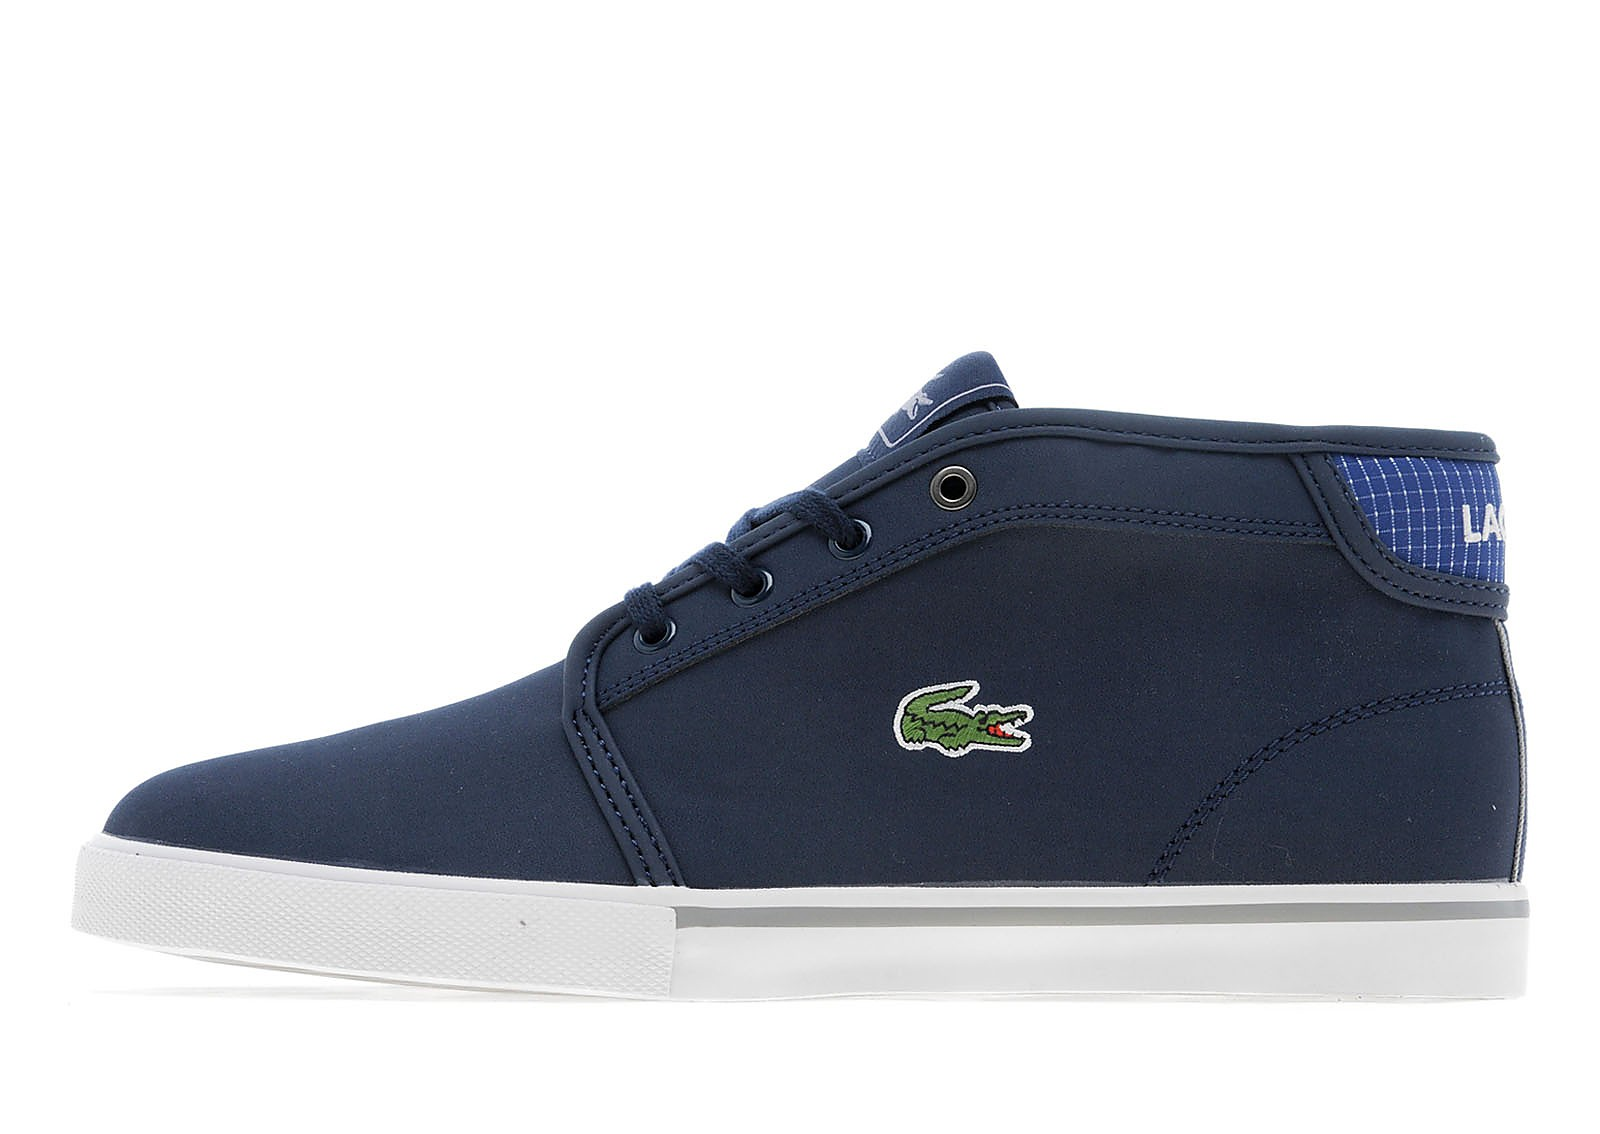 Mens Lacoste Ampthill LNC - Only at JD - Navy/Grey